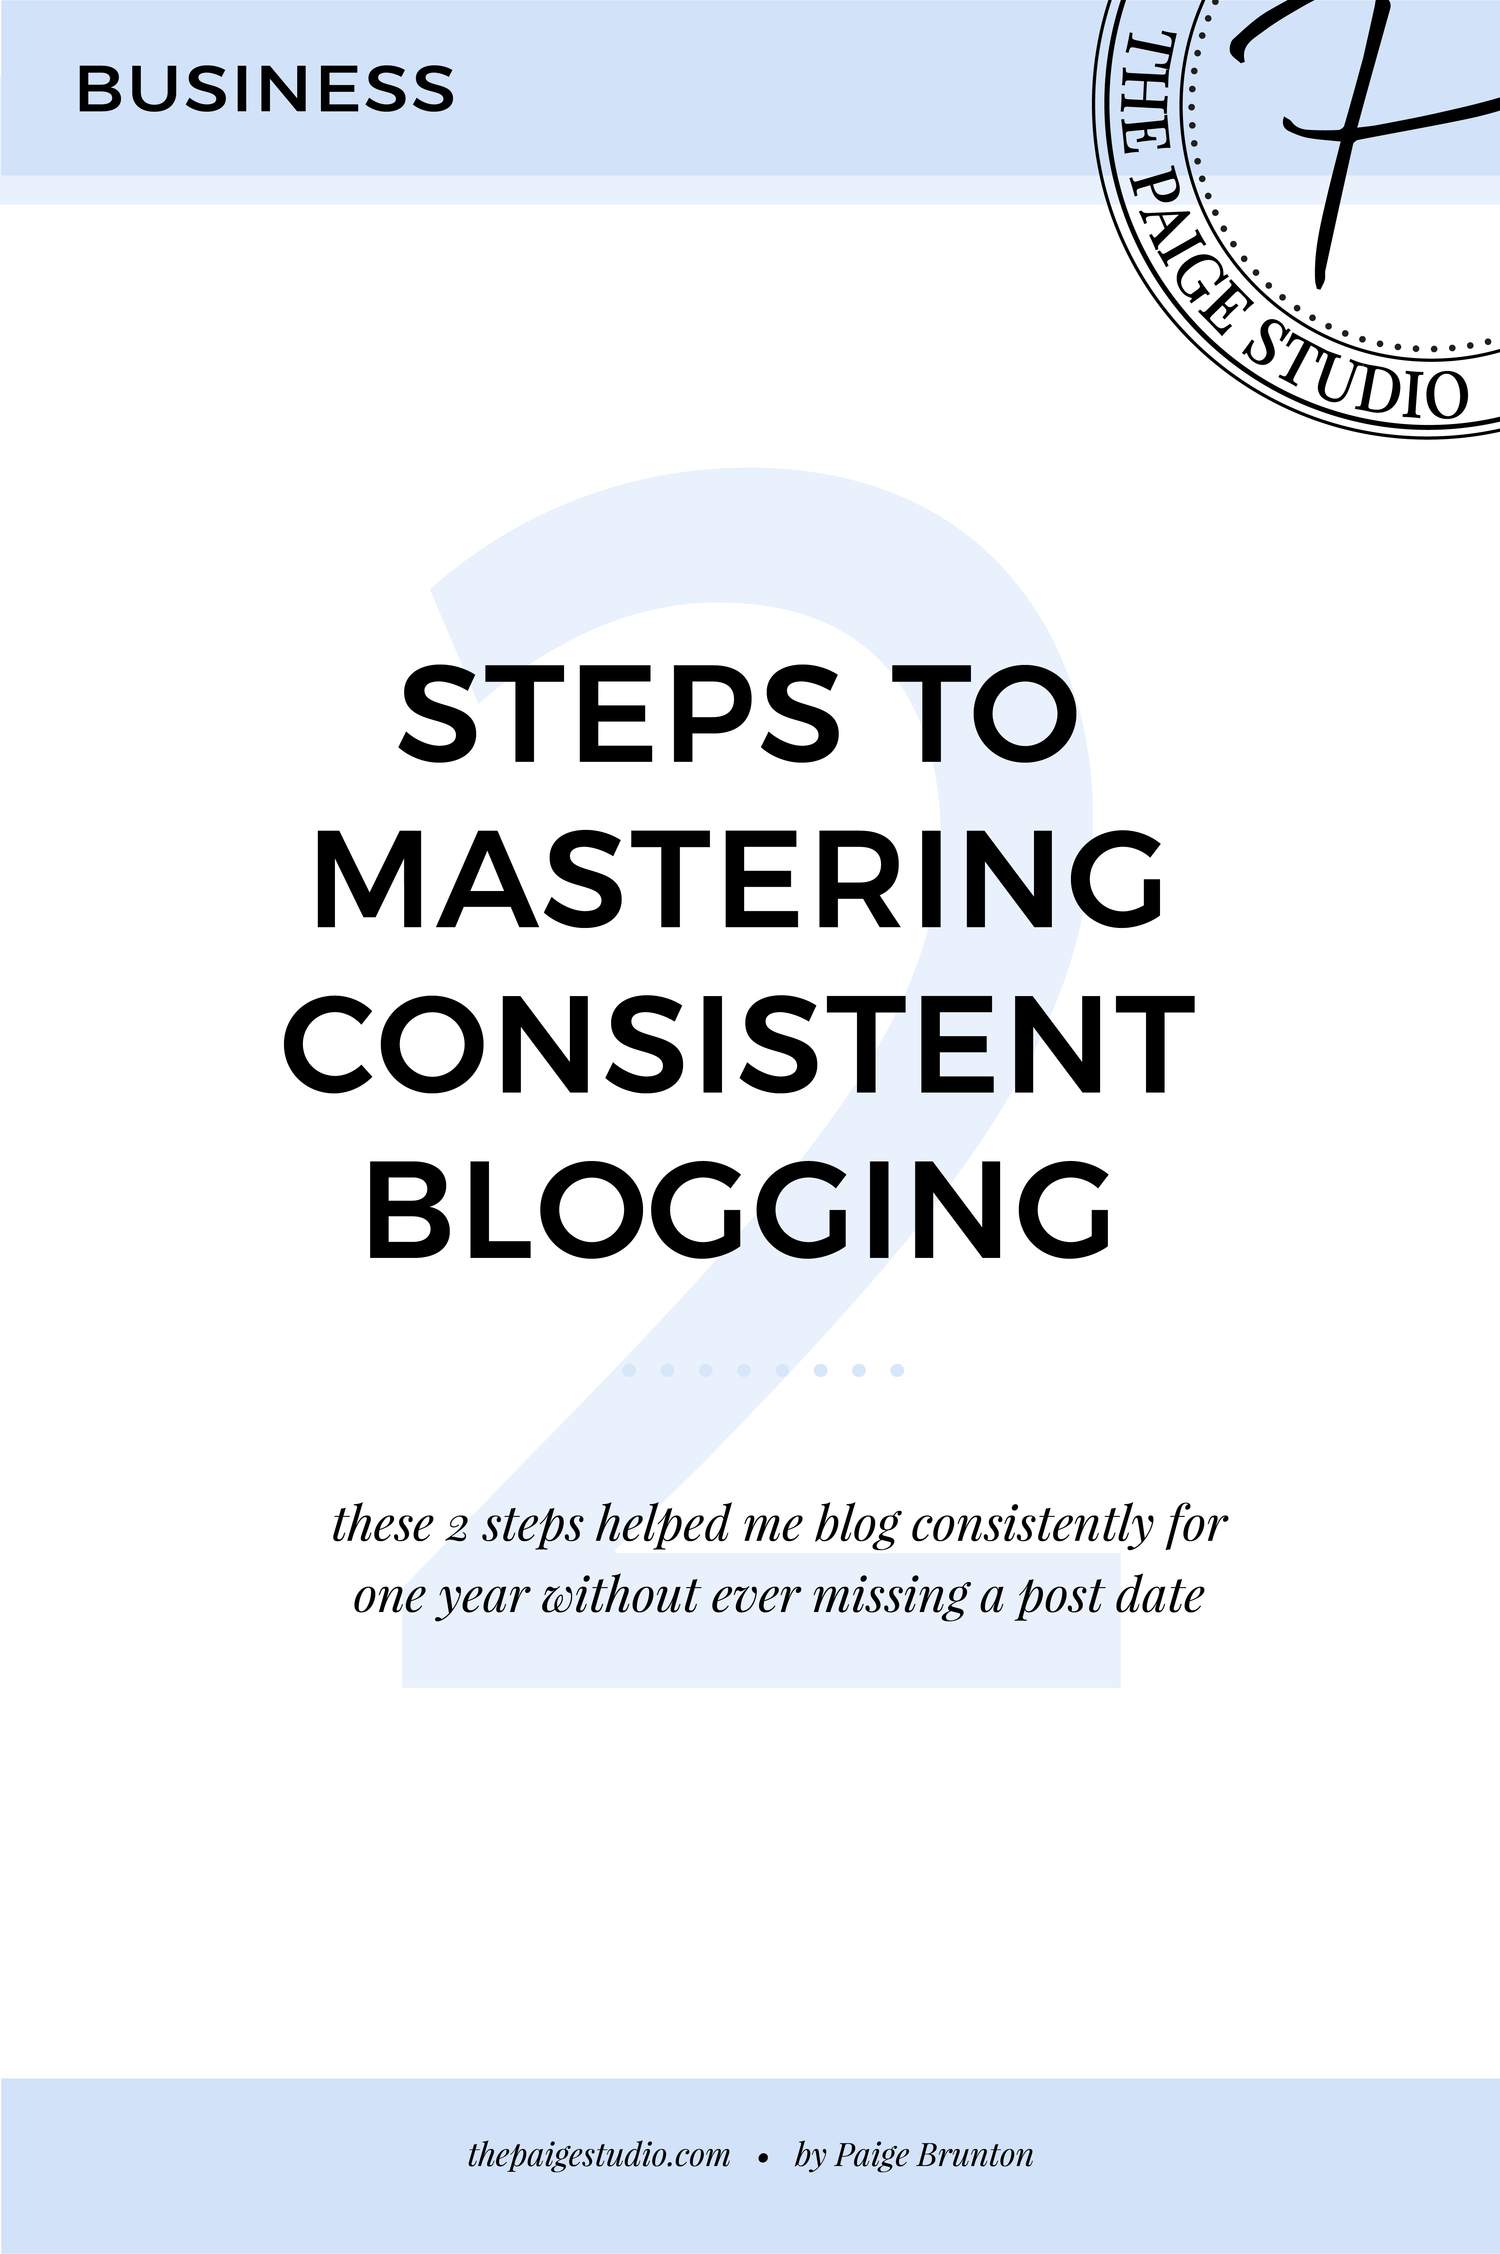 You Will Only Master Consistent Blogging After Doing These 2 Things Blog Strategy Online Business Marketing Online Business Strategy